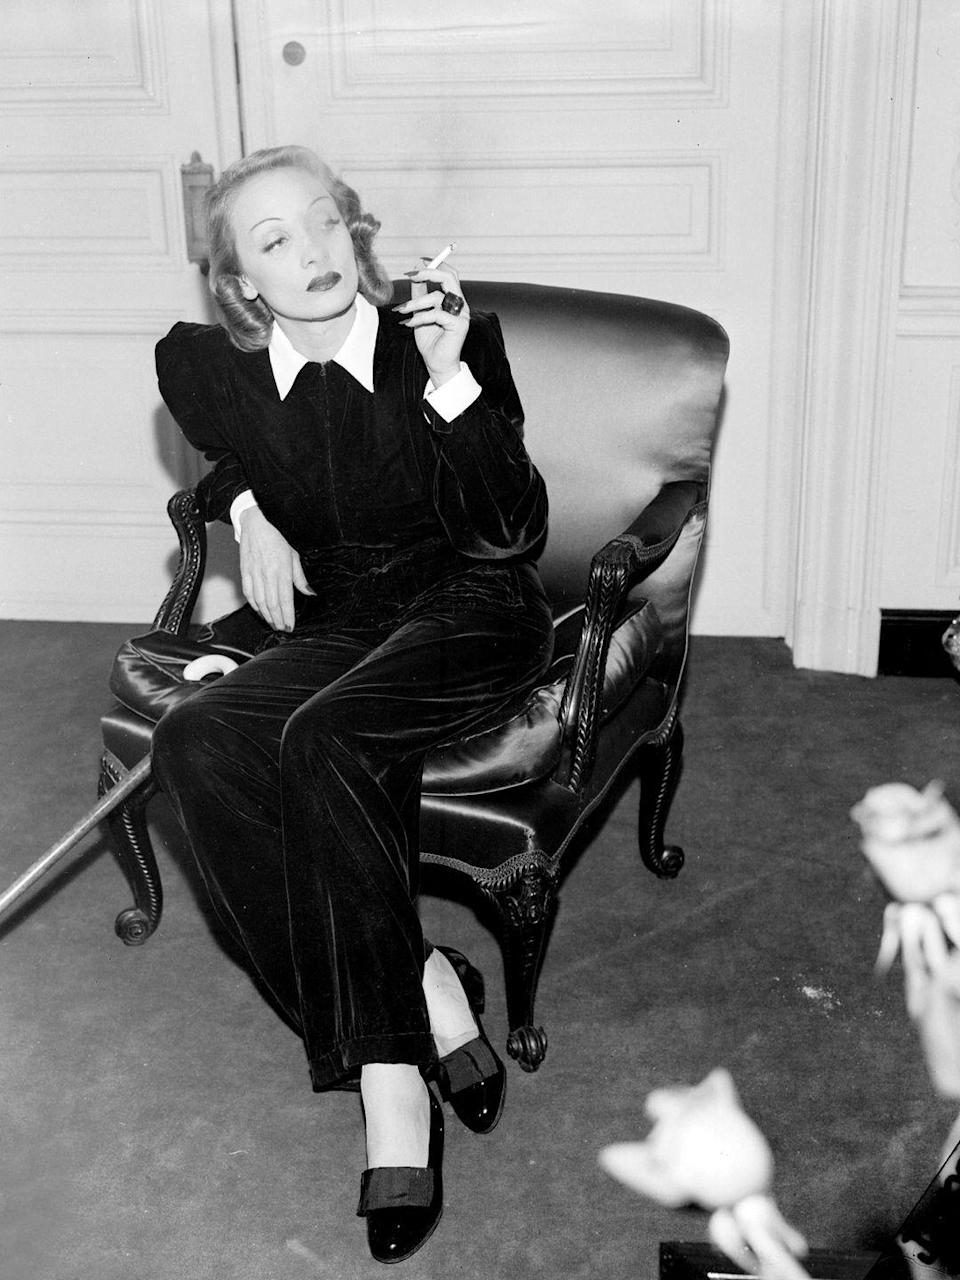 <p>Dietrich is caught lounging in a velvet pantsuit at the St. Regis Hotel in New York City. The actress and singer was very outspoken against her home country during World War II and performed over 500 times - sometimes near the front lines - for the Allied troops between 1943 and 1946. <br></p>